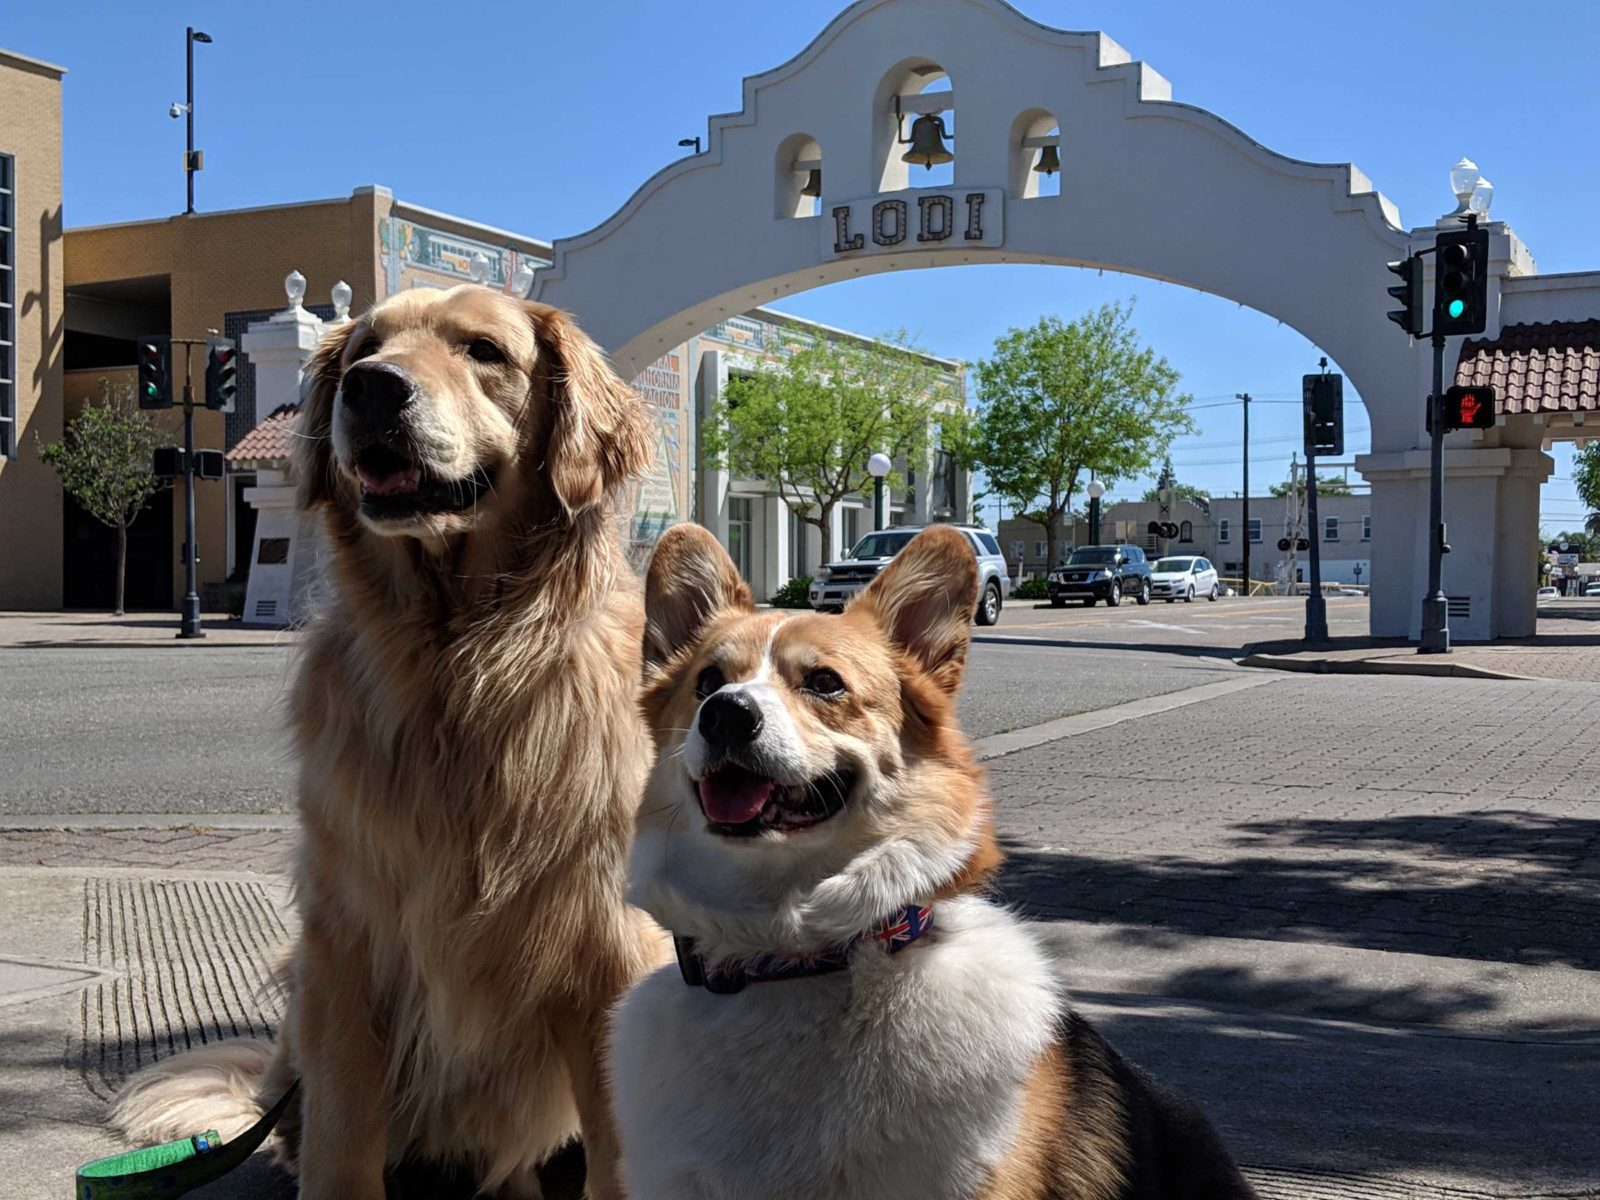 Dogs in front of Lodi sign